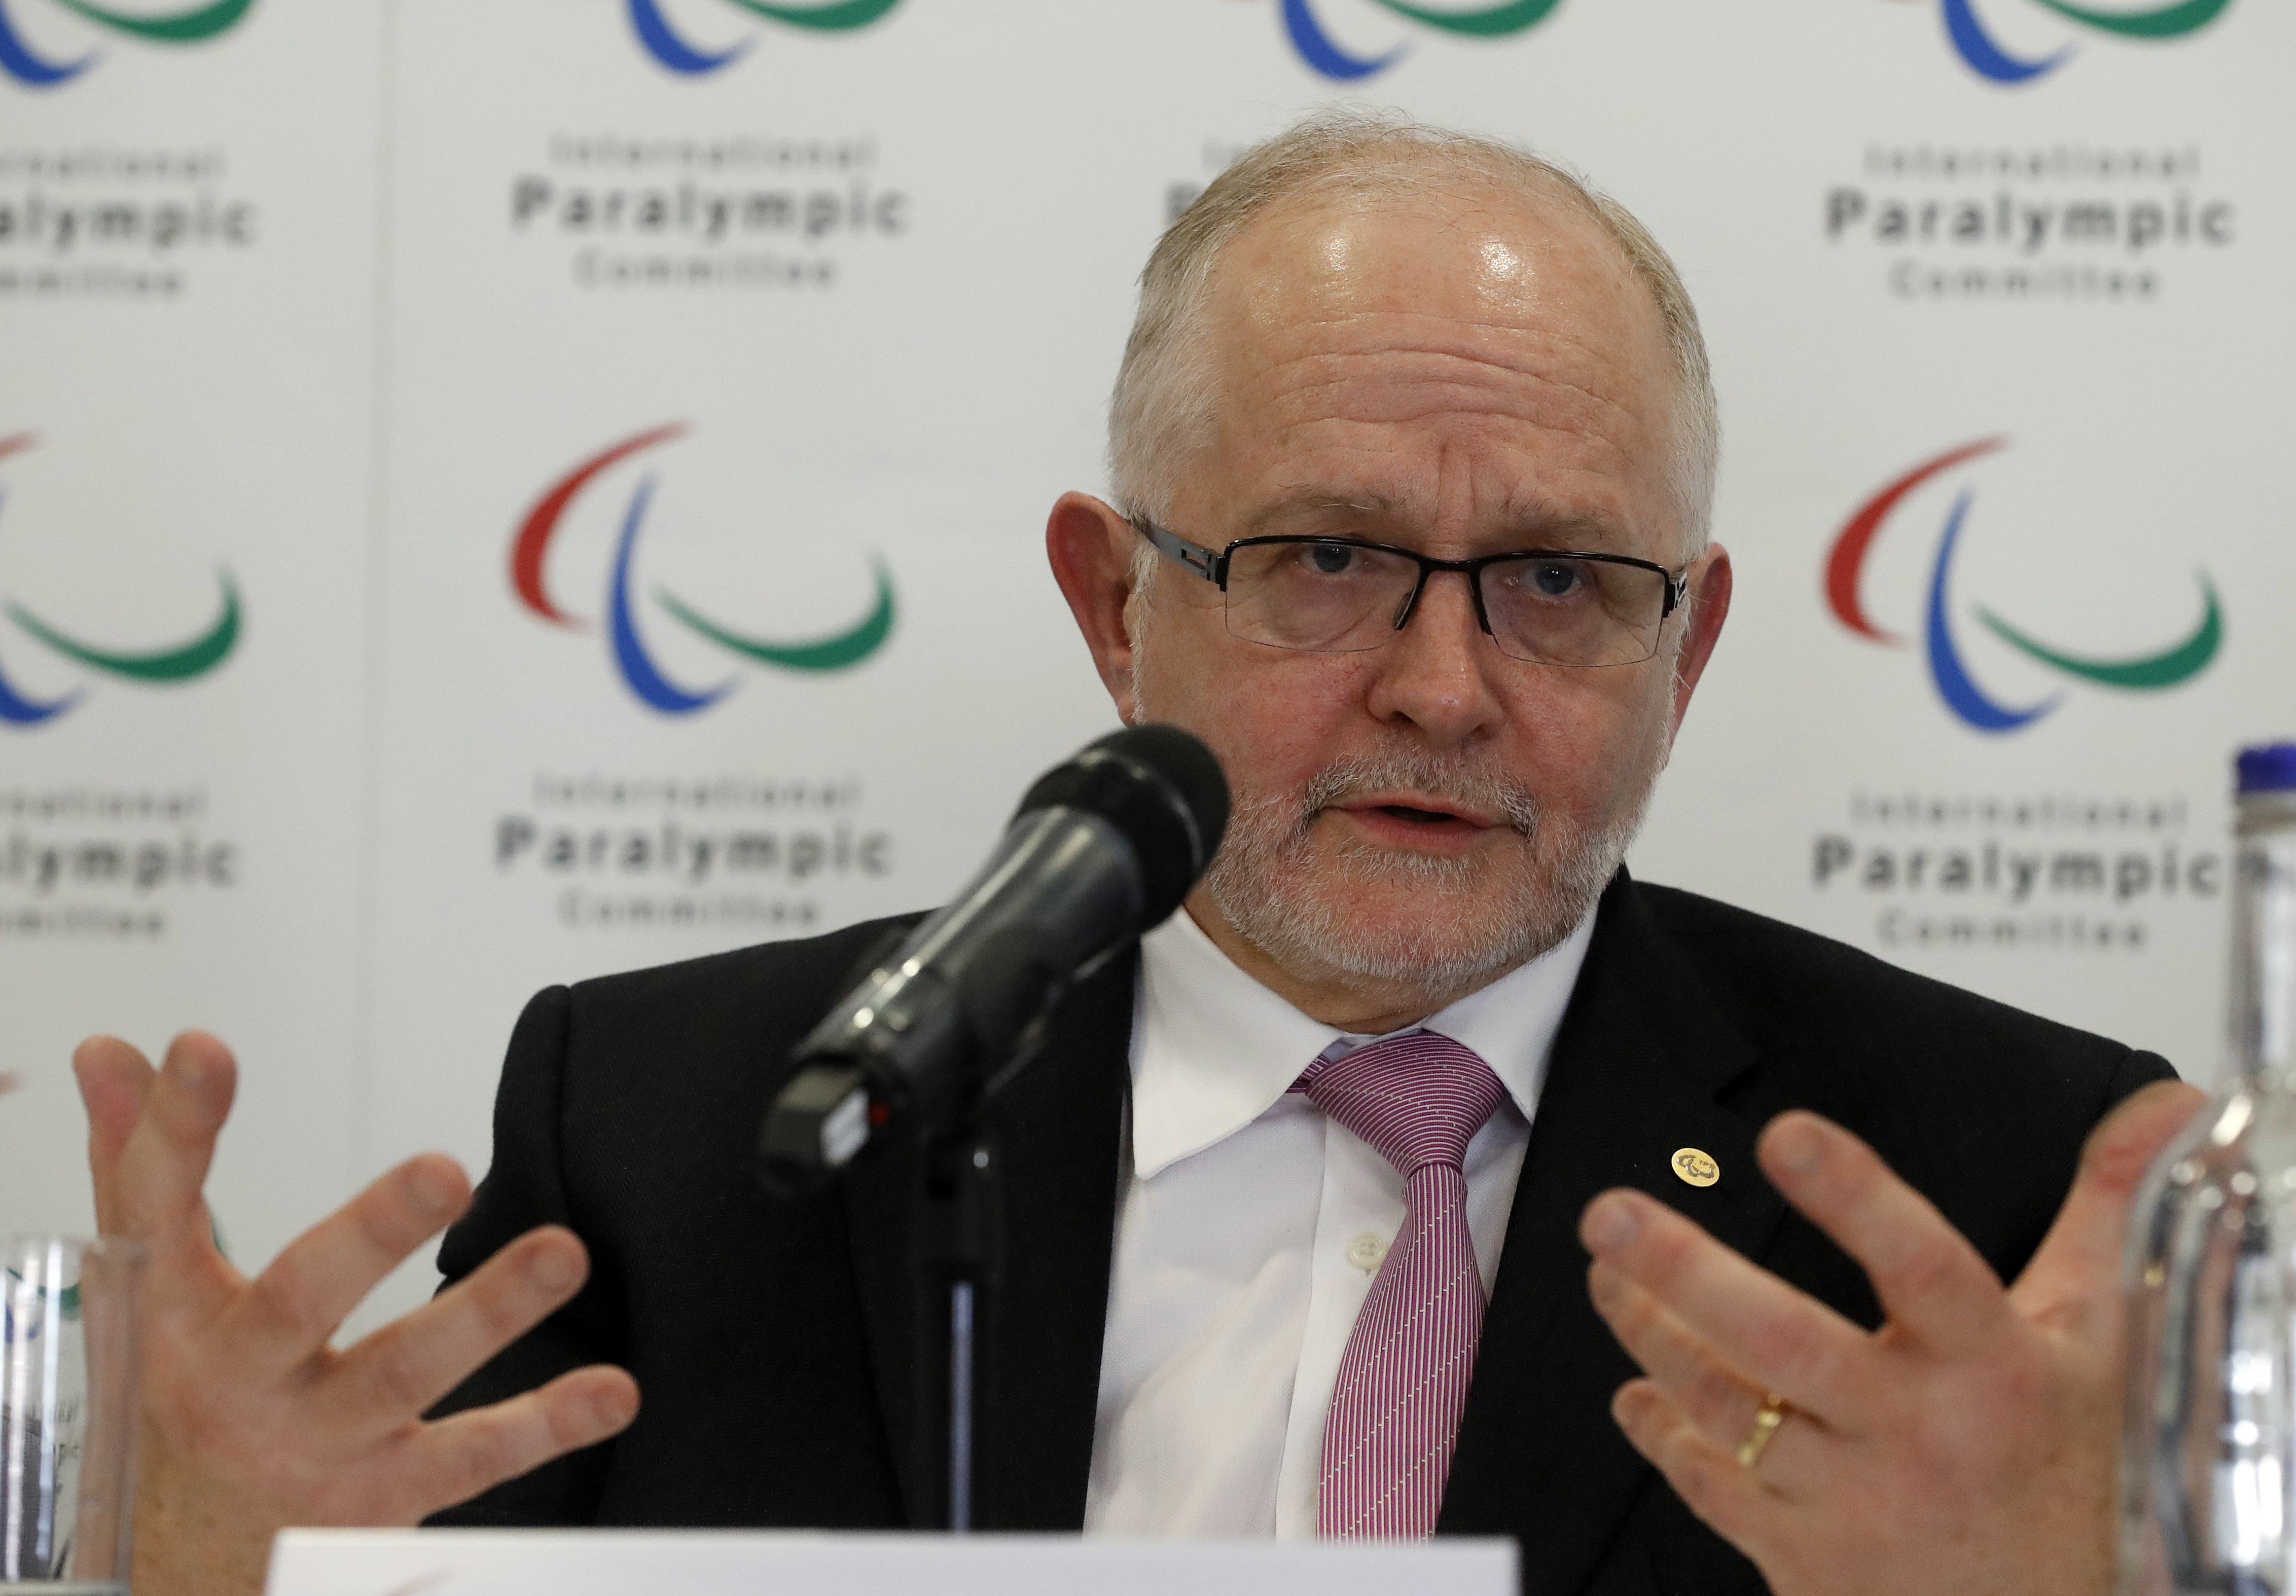 FILE - A Monday, May 22, 2017 file photo of International Paralympic Committee (IPC) President Philip Craven during a press conference, in London. The host city for the 2024 Paralympics will be selected without the Paralympic leadership having a say in wh